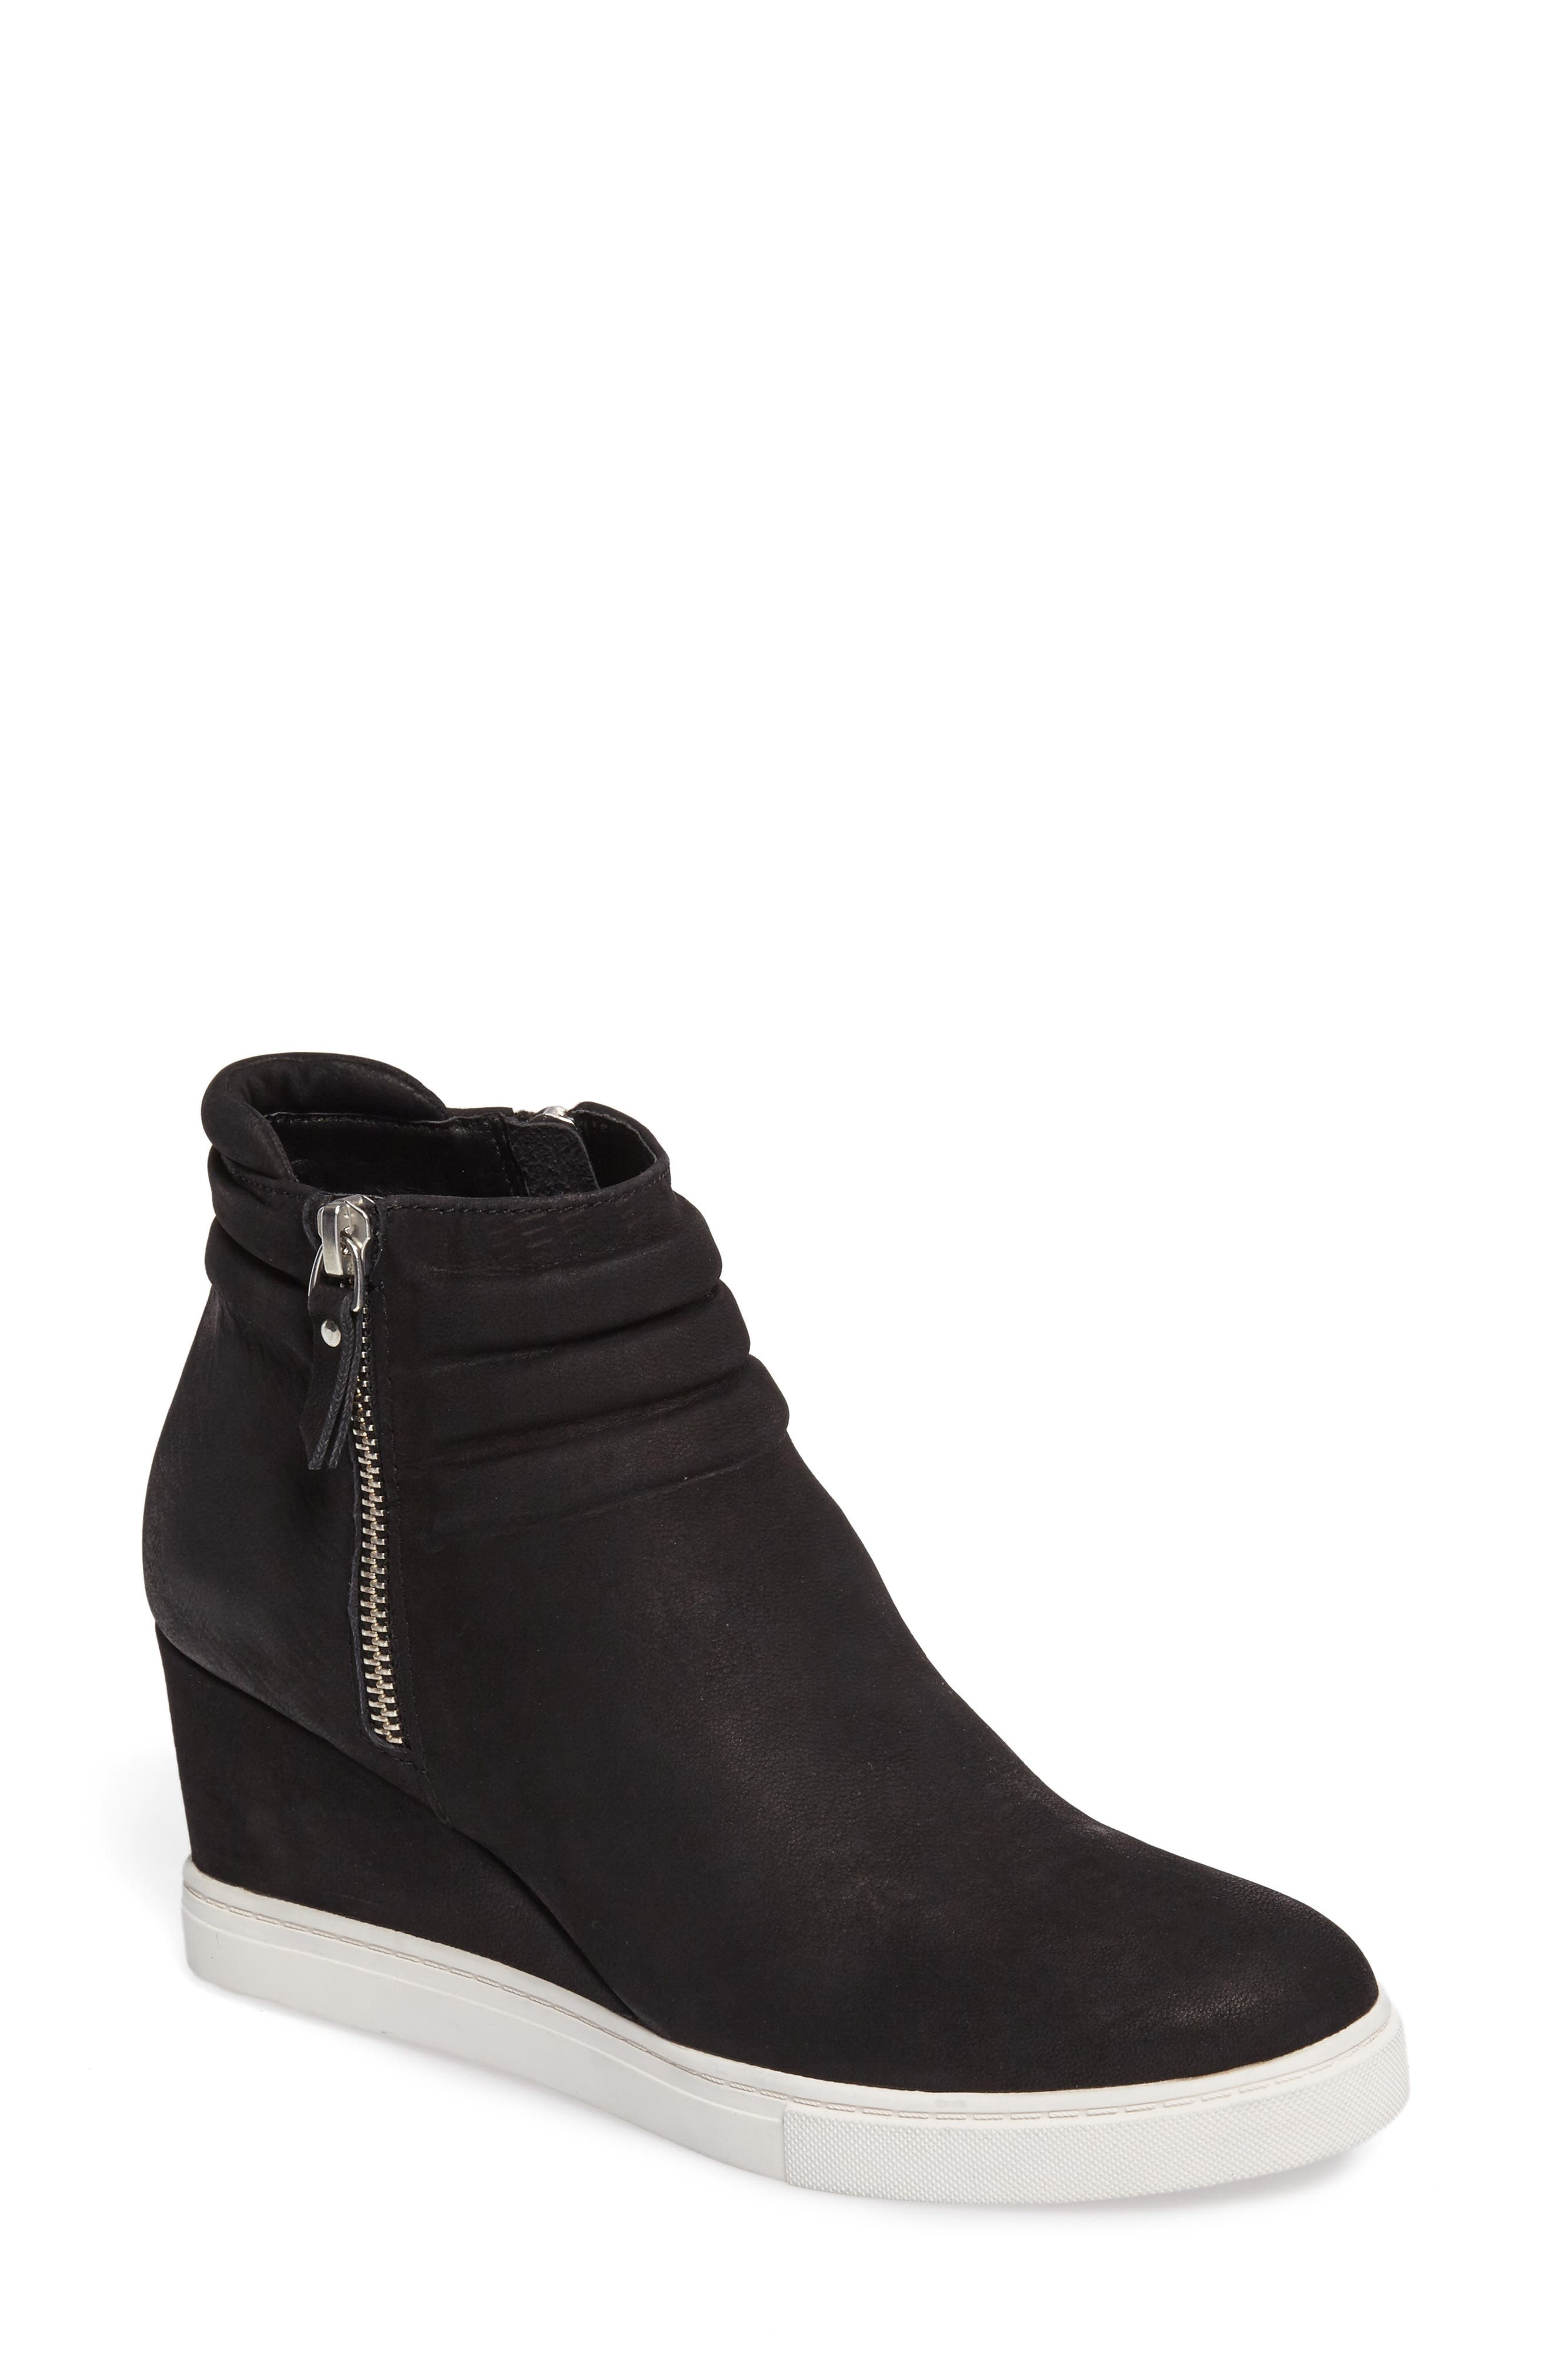 LINEA PAOLO Frieda Wedge Bootie, Main, color, BLACK LEATHER